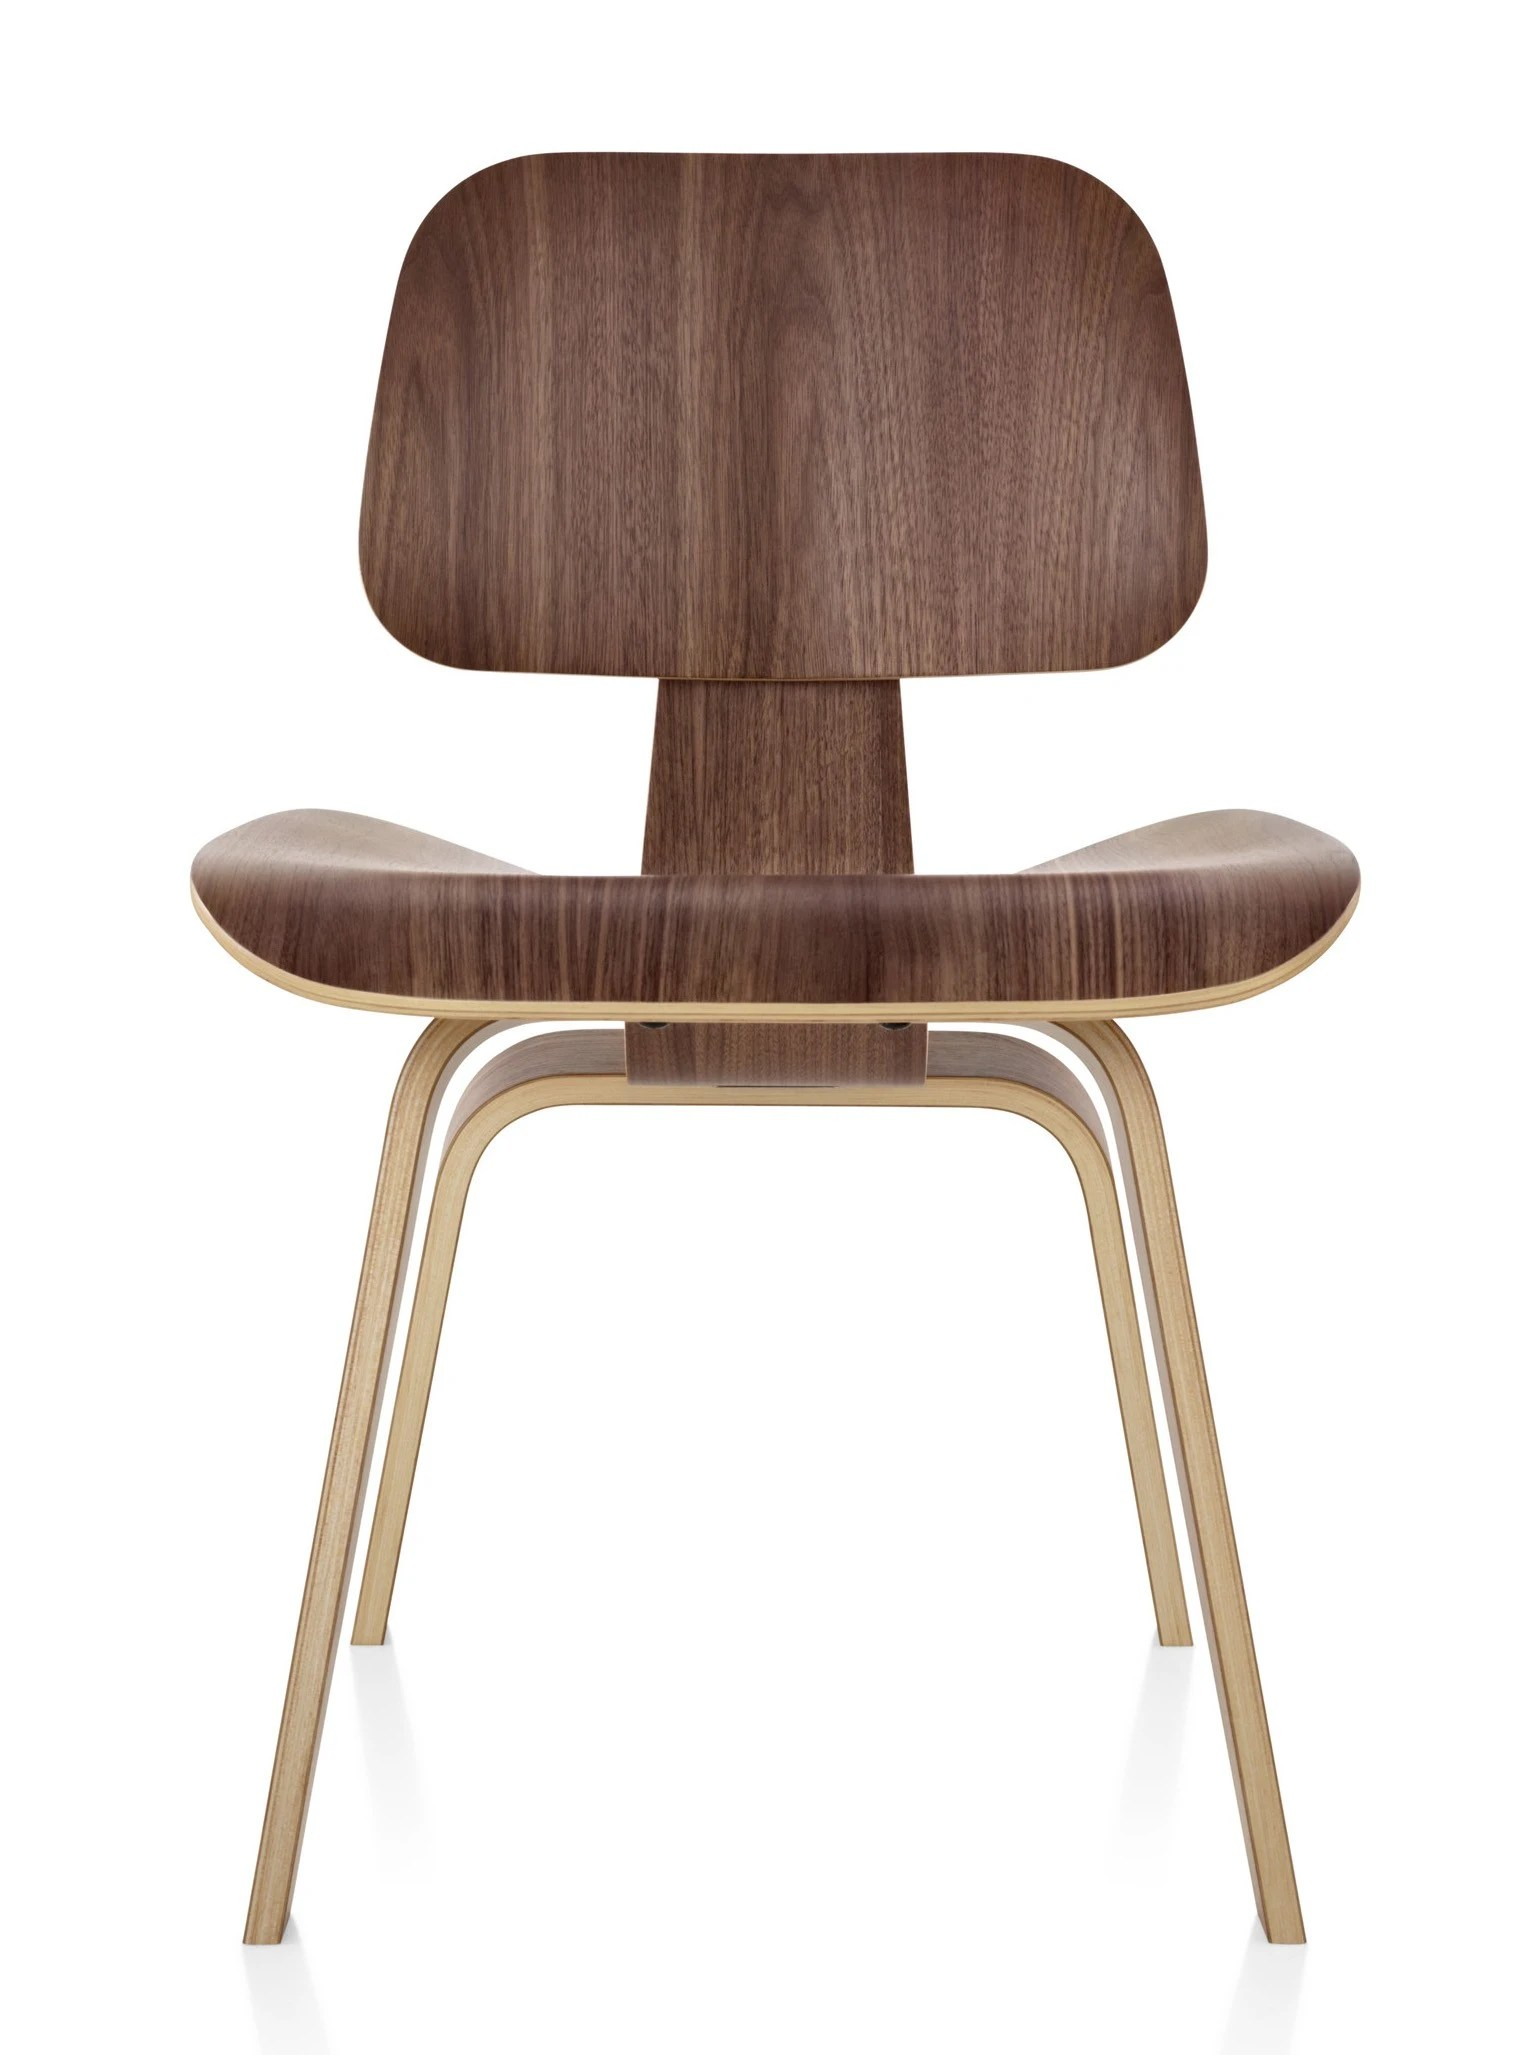 Herman Miller Eames Molded Plywood Dining Chair  Wood Legs